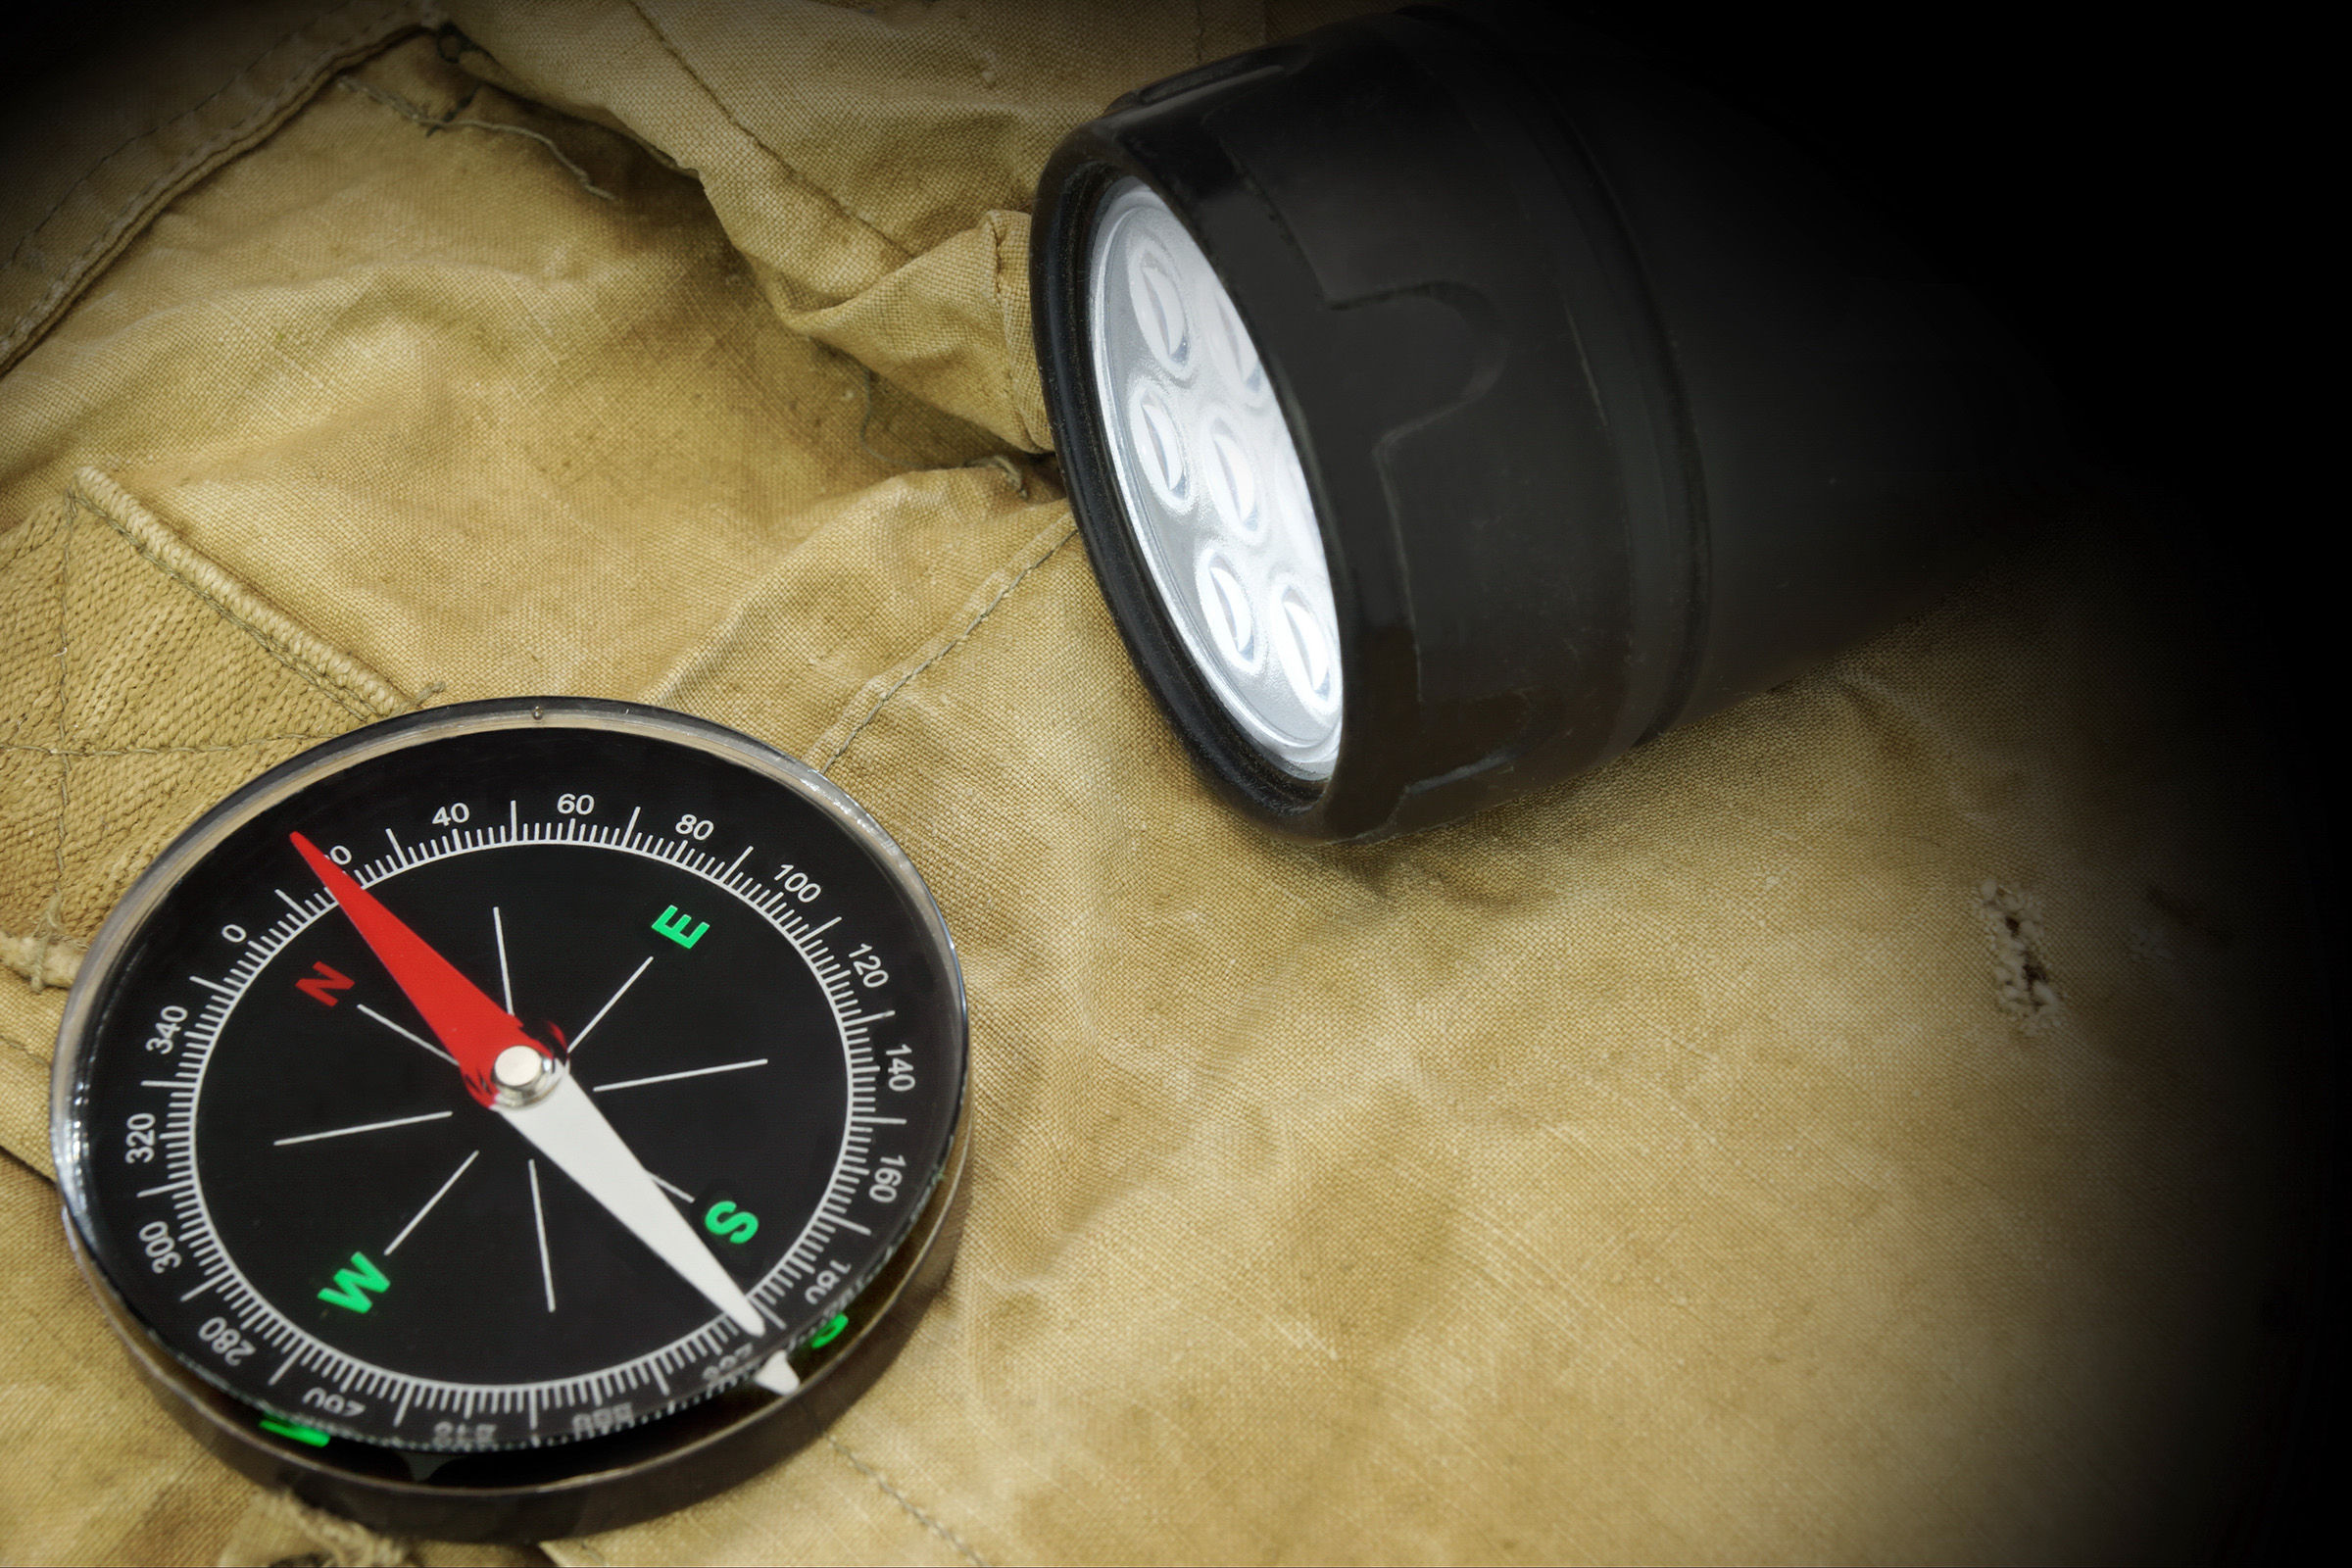 Flash light and compass